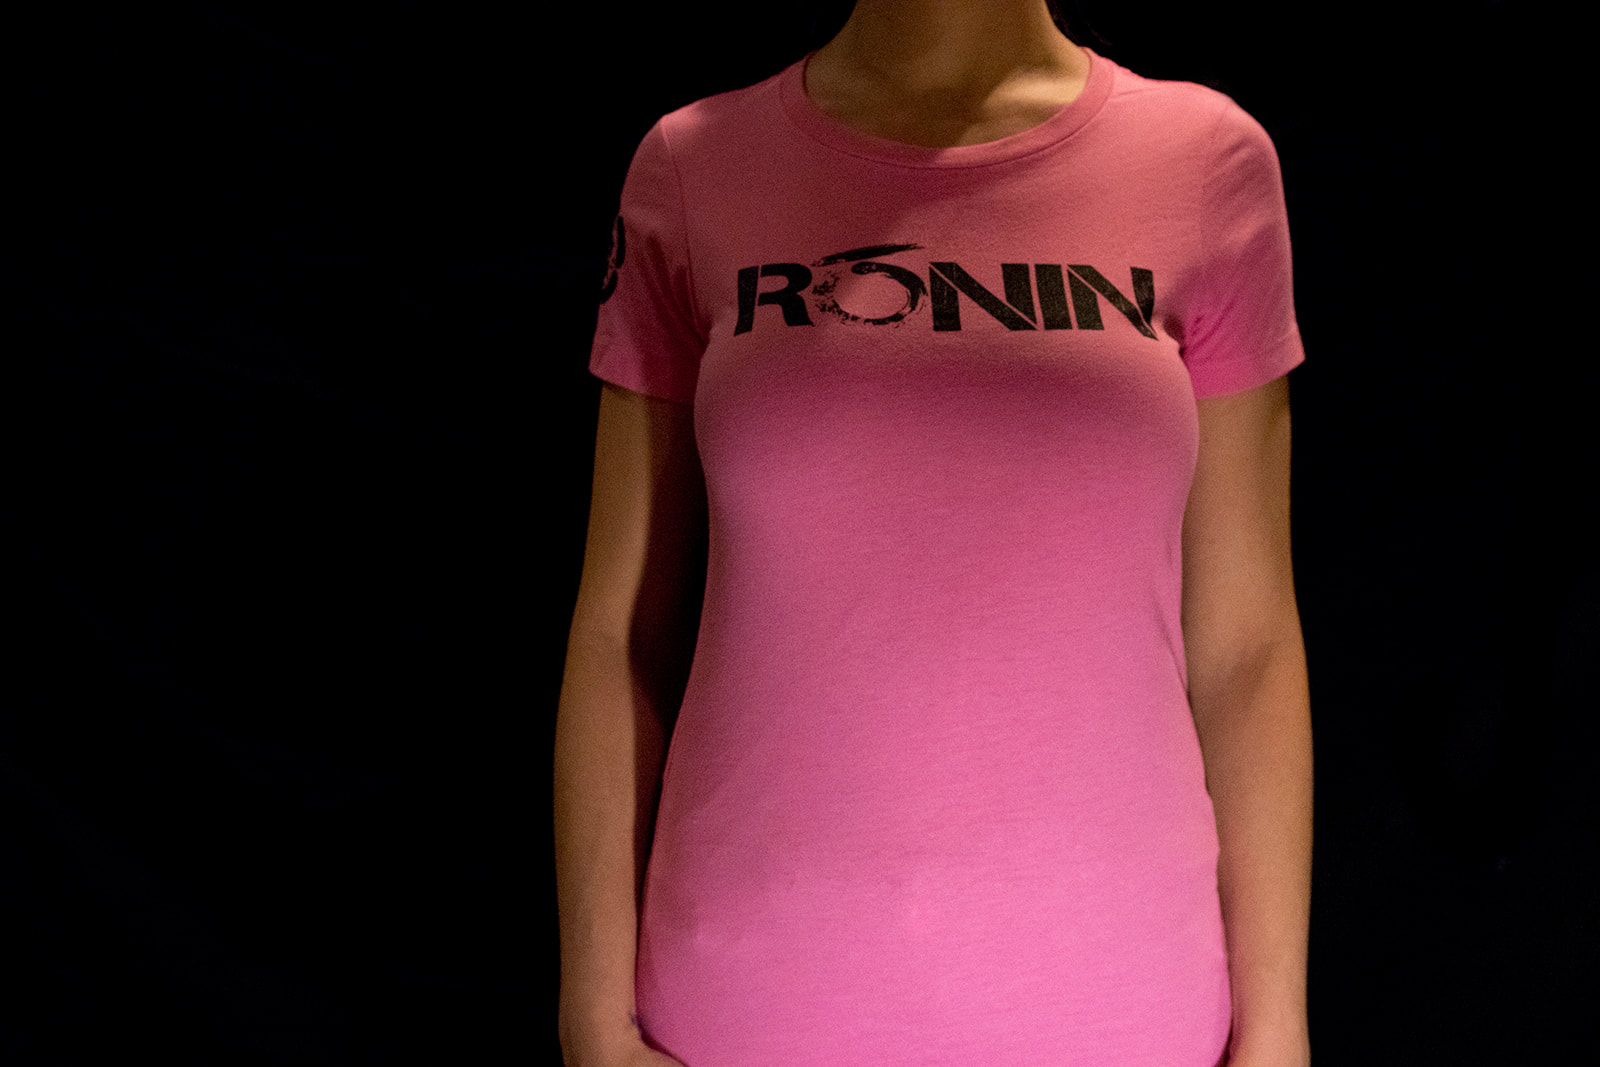 c22d7ac5aac6 *NEW* Ladies Ronin T-Shirts (Sakura) - SALE